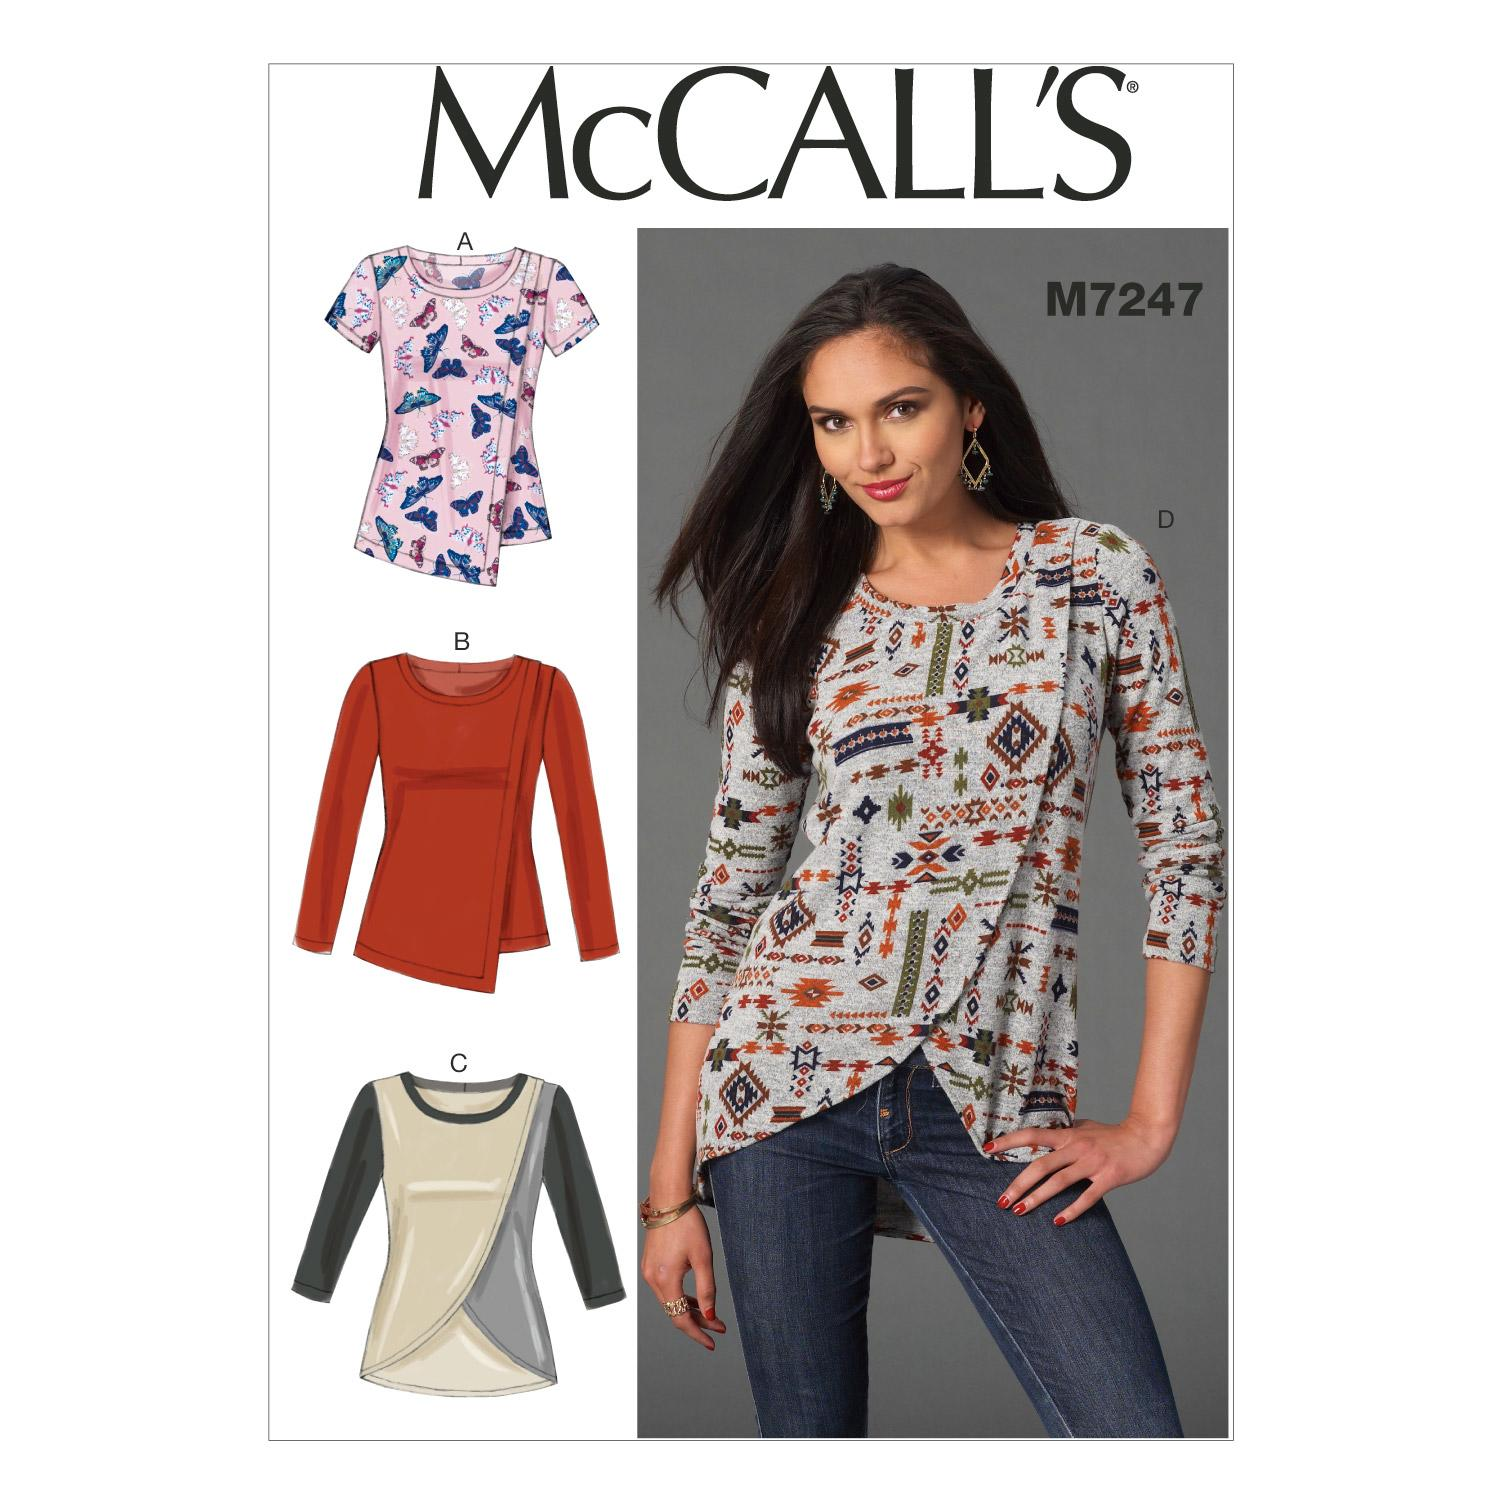 McCalls M7247 Tops/Tunics